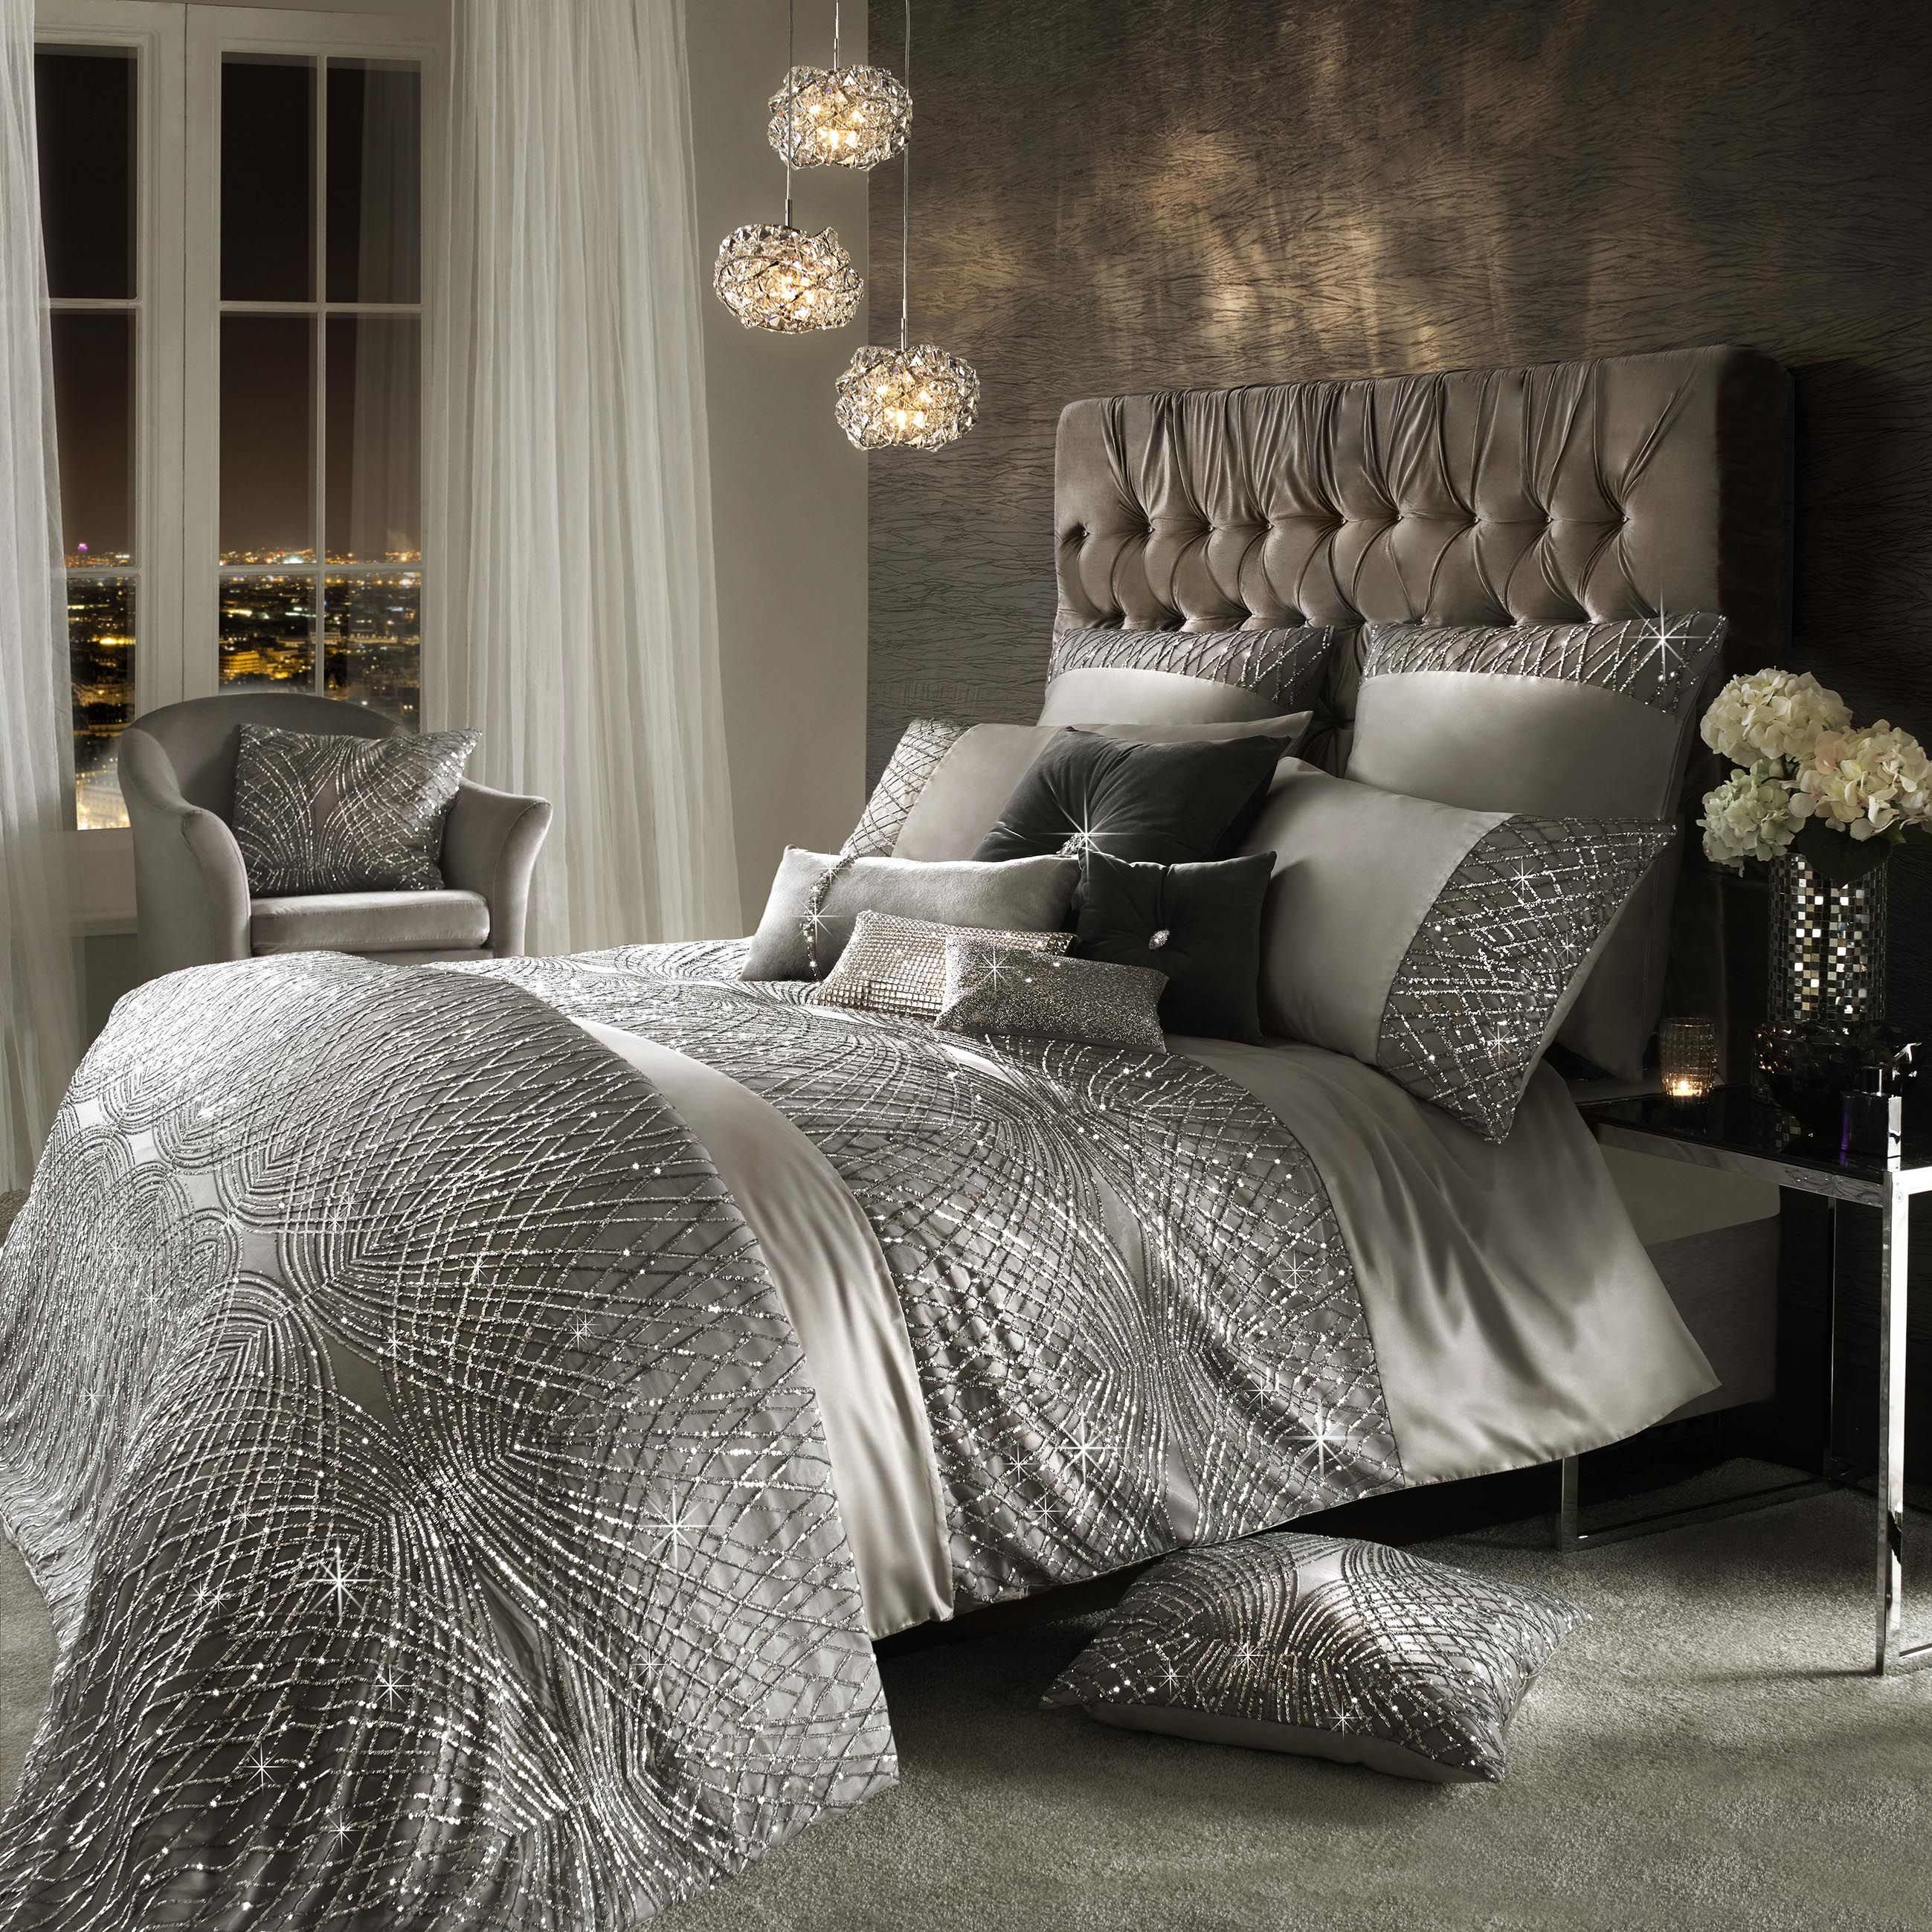 Luxury Bedding Sets In 2020